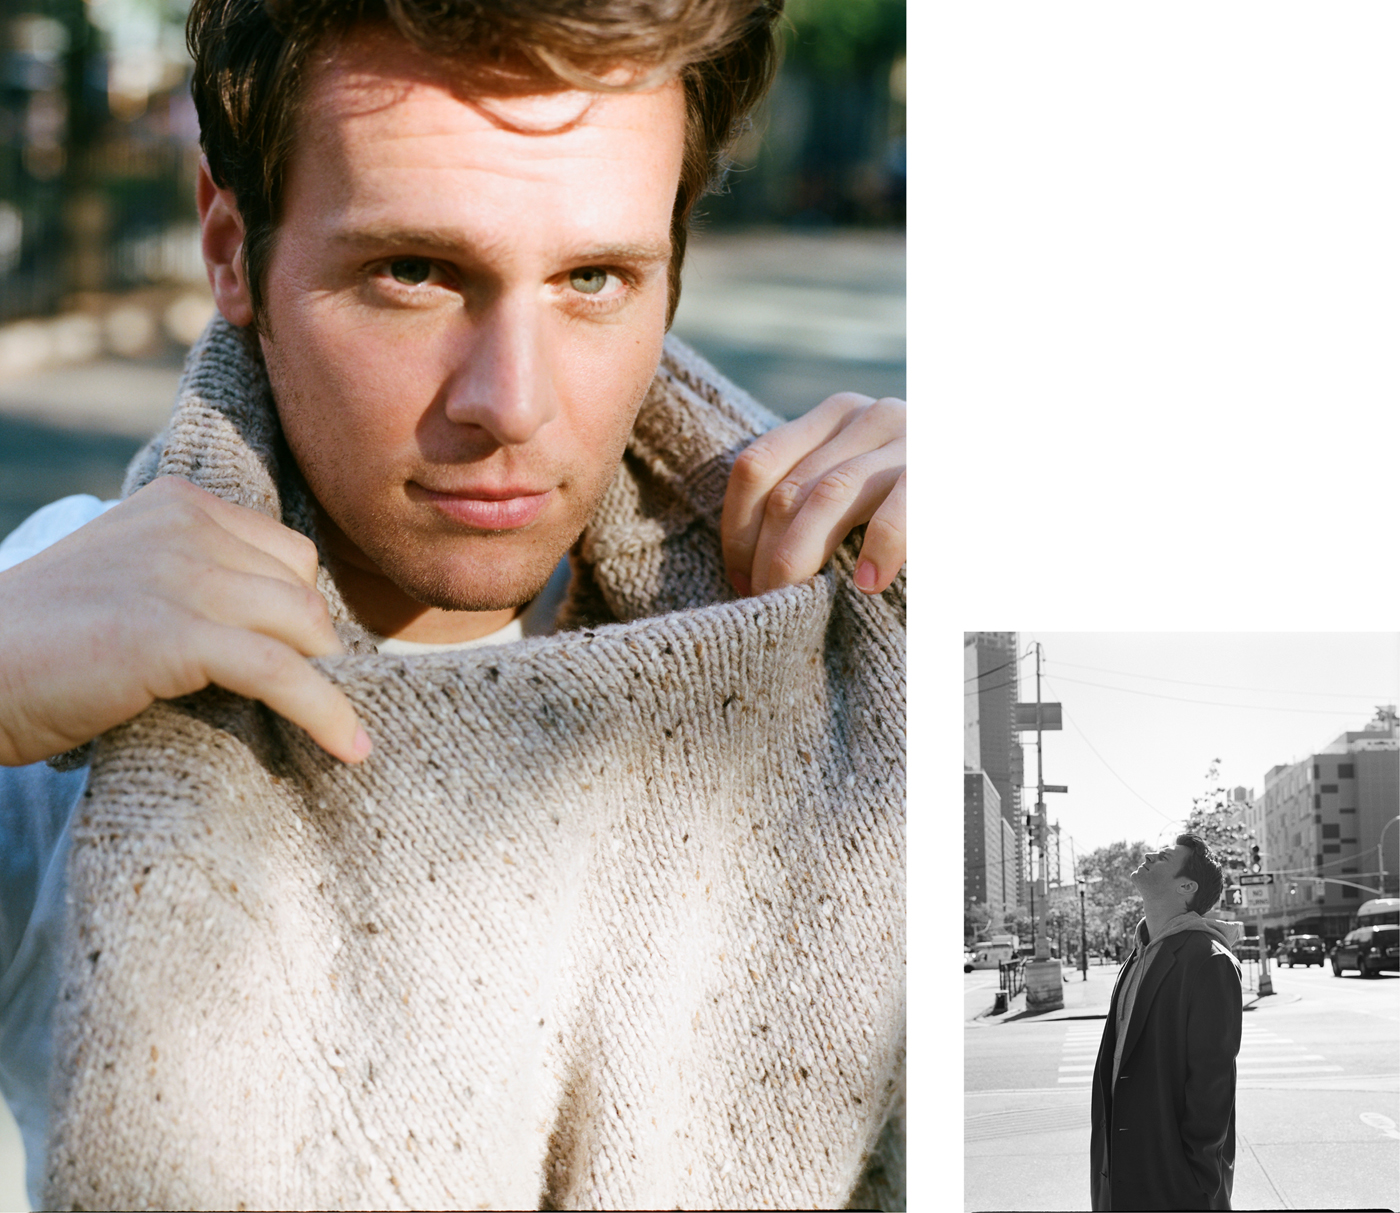 Left: Sweater by Deveaux. T-shirt by Hanes.Right: Coat by Acne Studios. Sweatshirt by Calvin Klein.